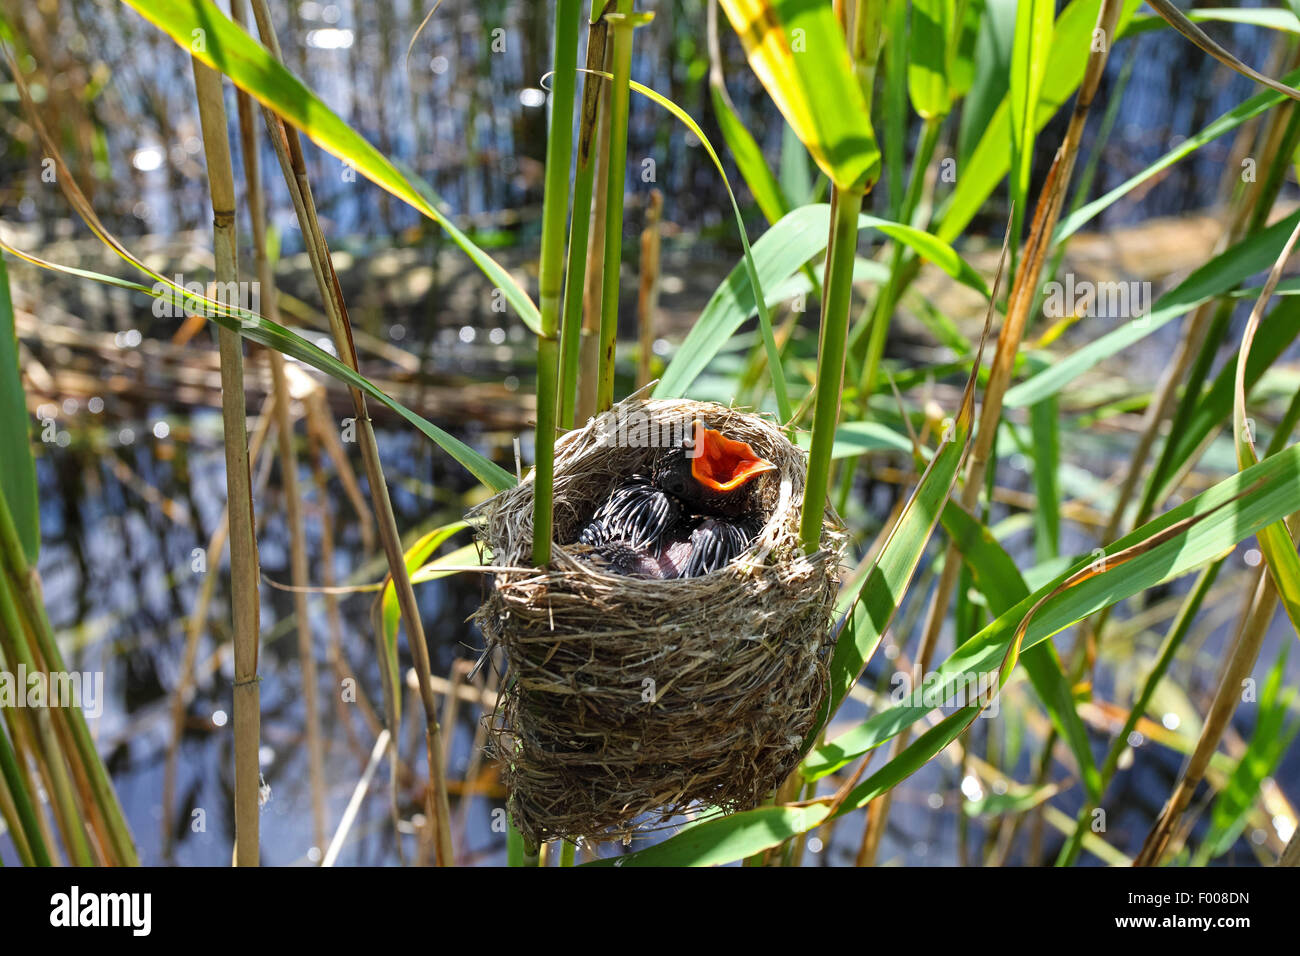 Eurasian cuckoo (Cuculus canorus), chick in the nest of a reed warbler, Germany - Stock Image